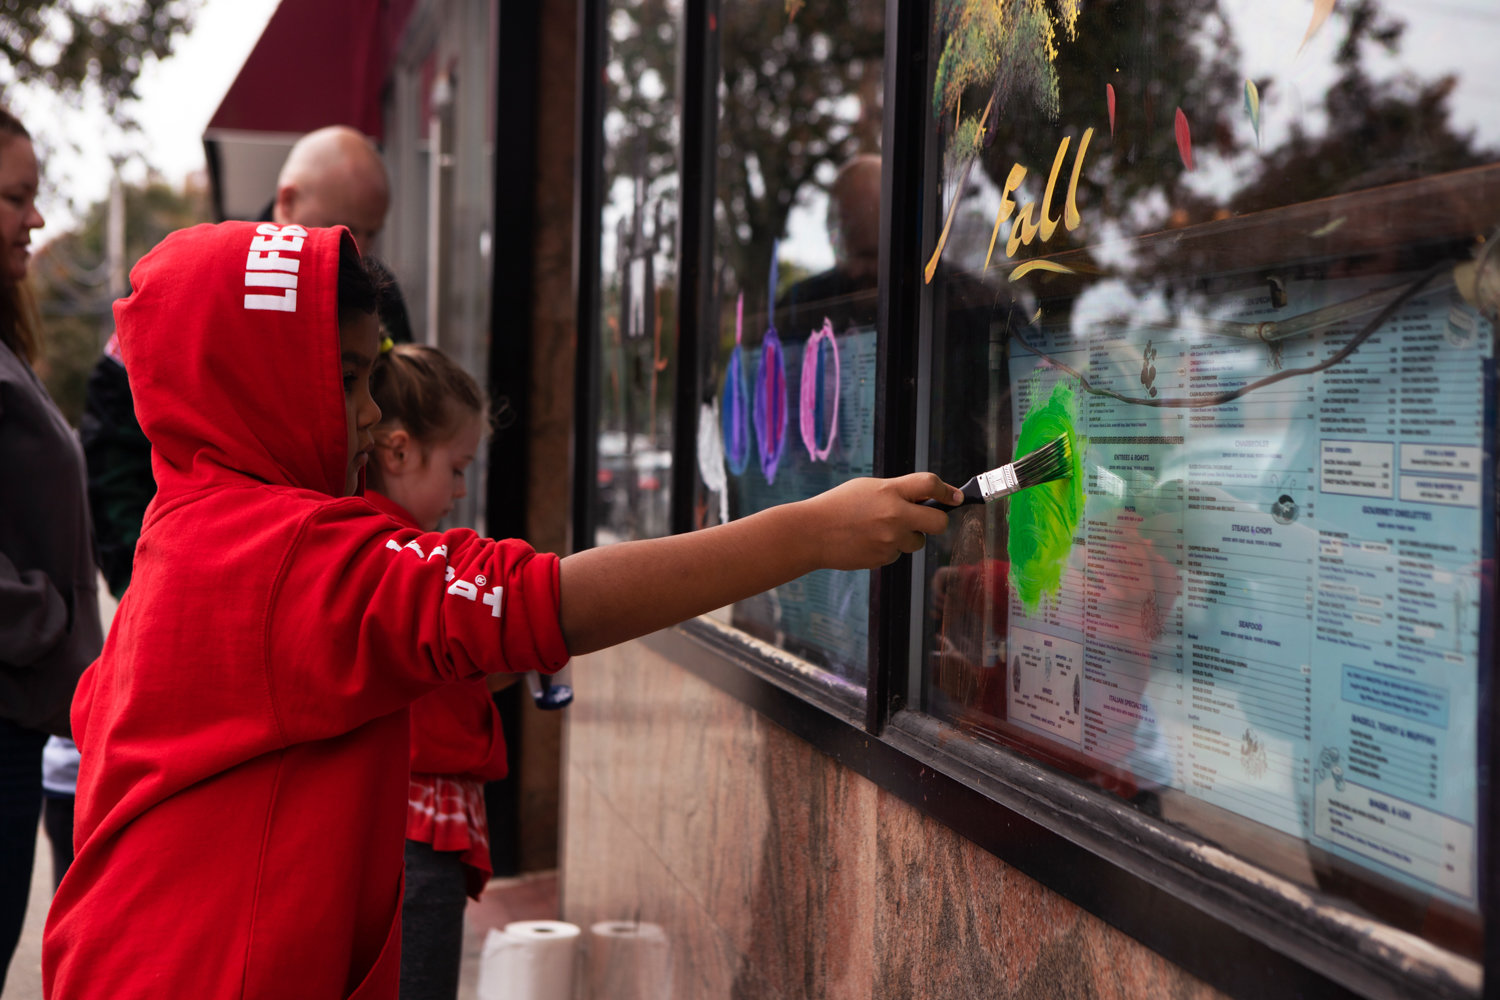 Children paint the windows outside Blue Jay Restaurant on Johnson Avenue during the Kiwanis Club's annual Halloween window painting contest.